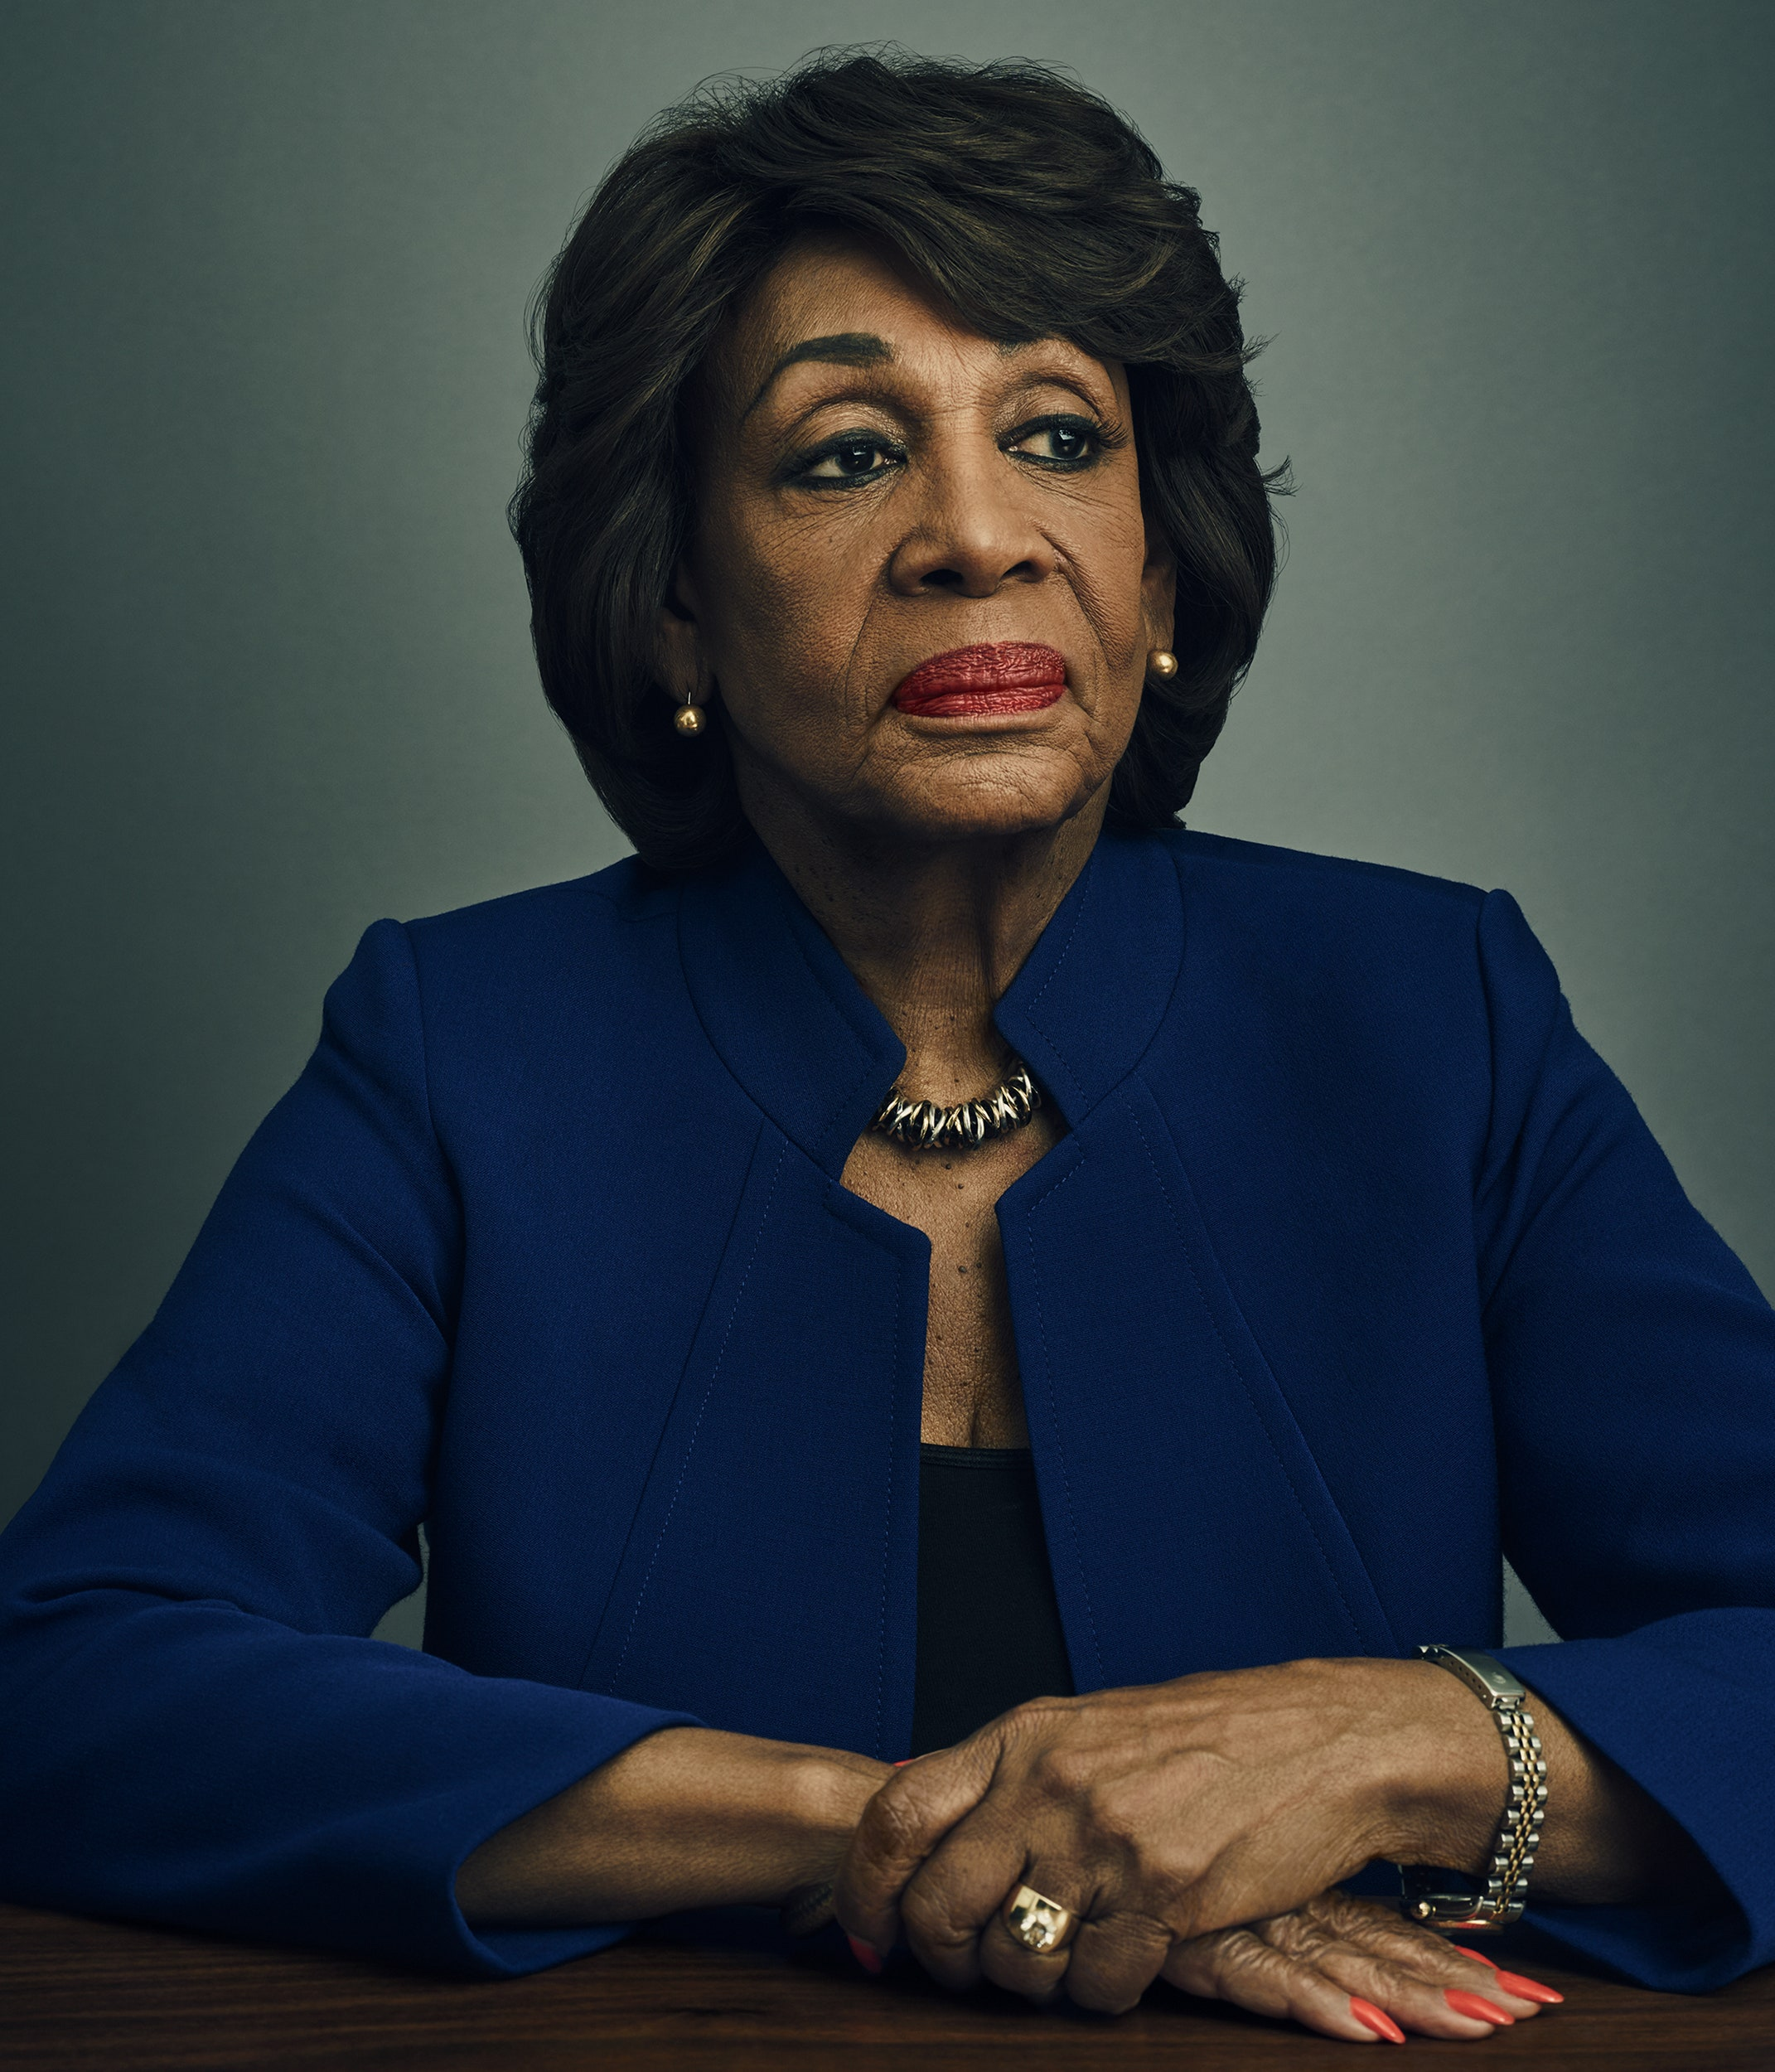 Bailey Bashes Maxine Waters For Slavery Comparison & Dems Inability To Take Responsibility